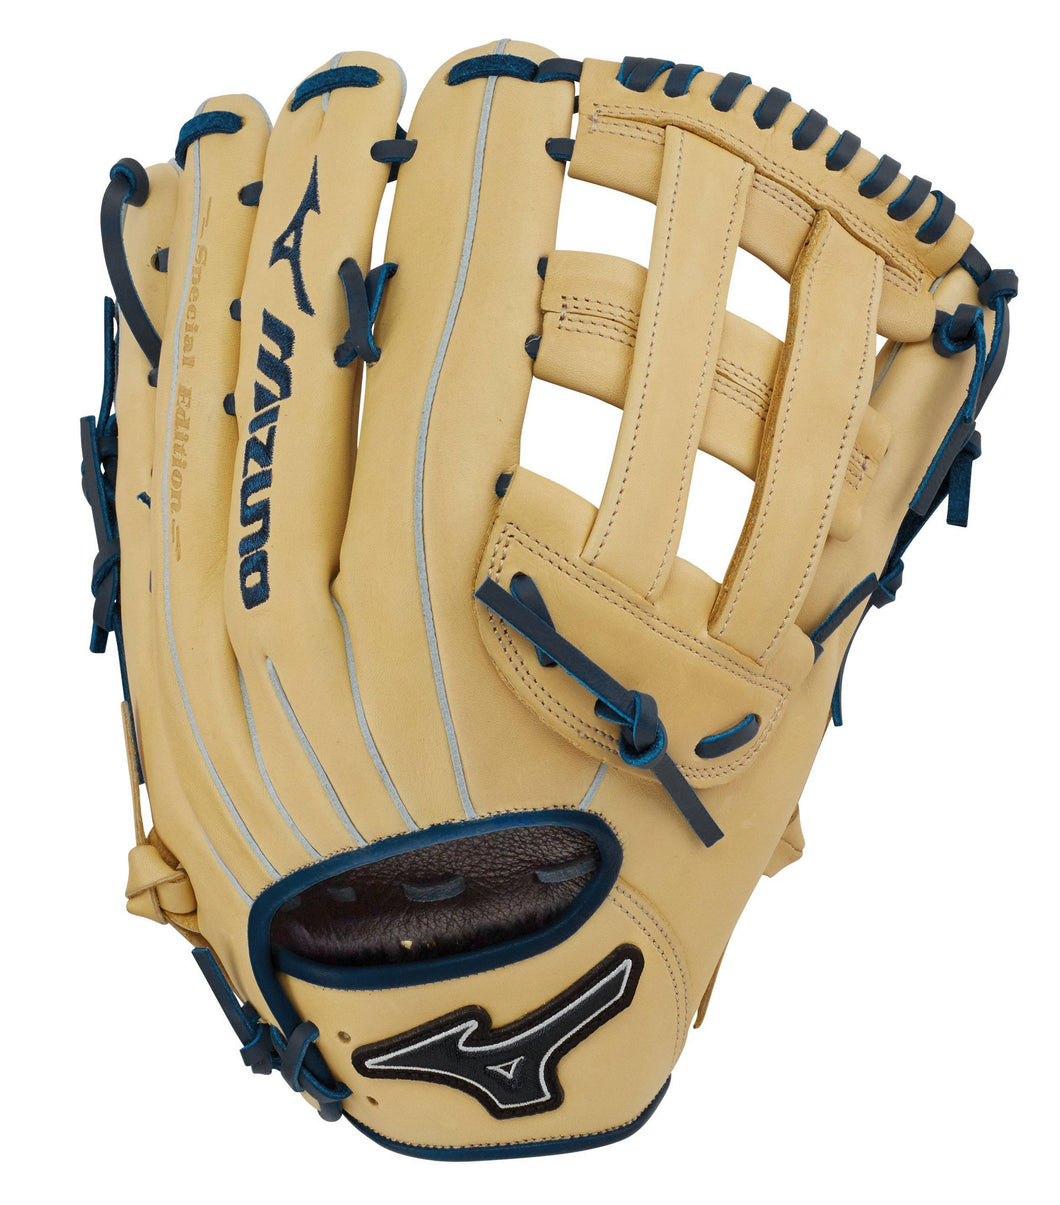 Mizuno GMVP1300PSES7 MVP Prime SE Slowpitch Soft Ball Adult Gloves, 13